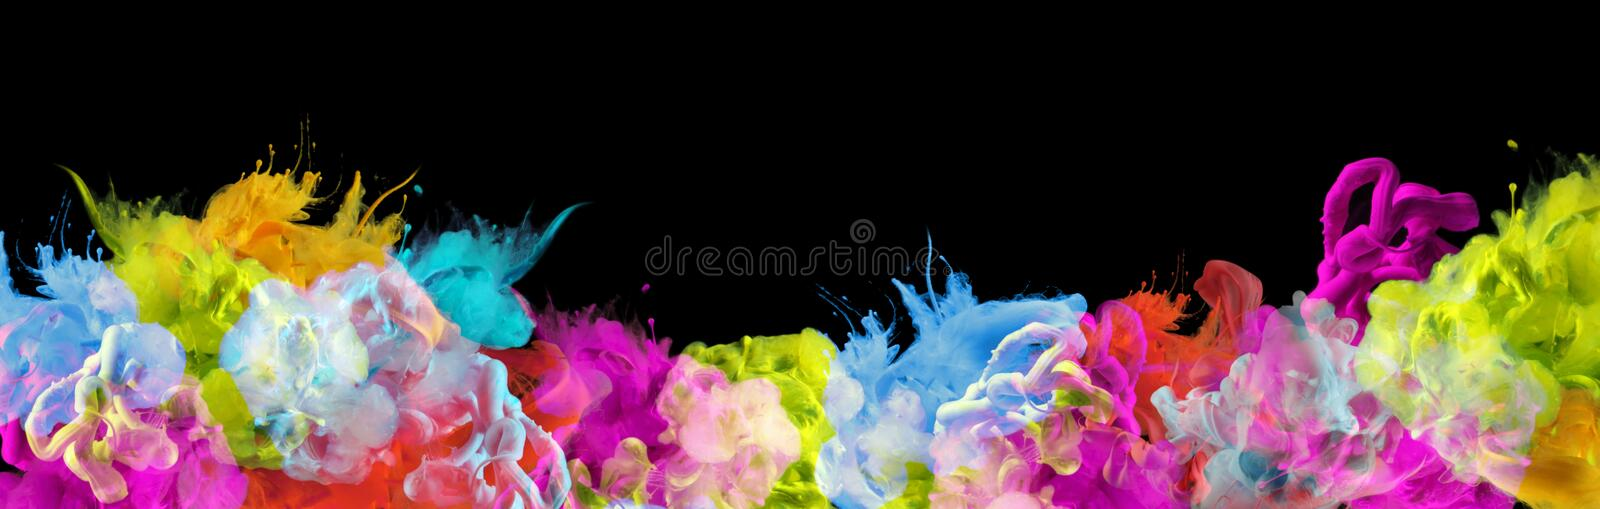 Acrylic colors in water. Ink blot. Abstract black background. Horizontal long banner stock photo